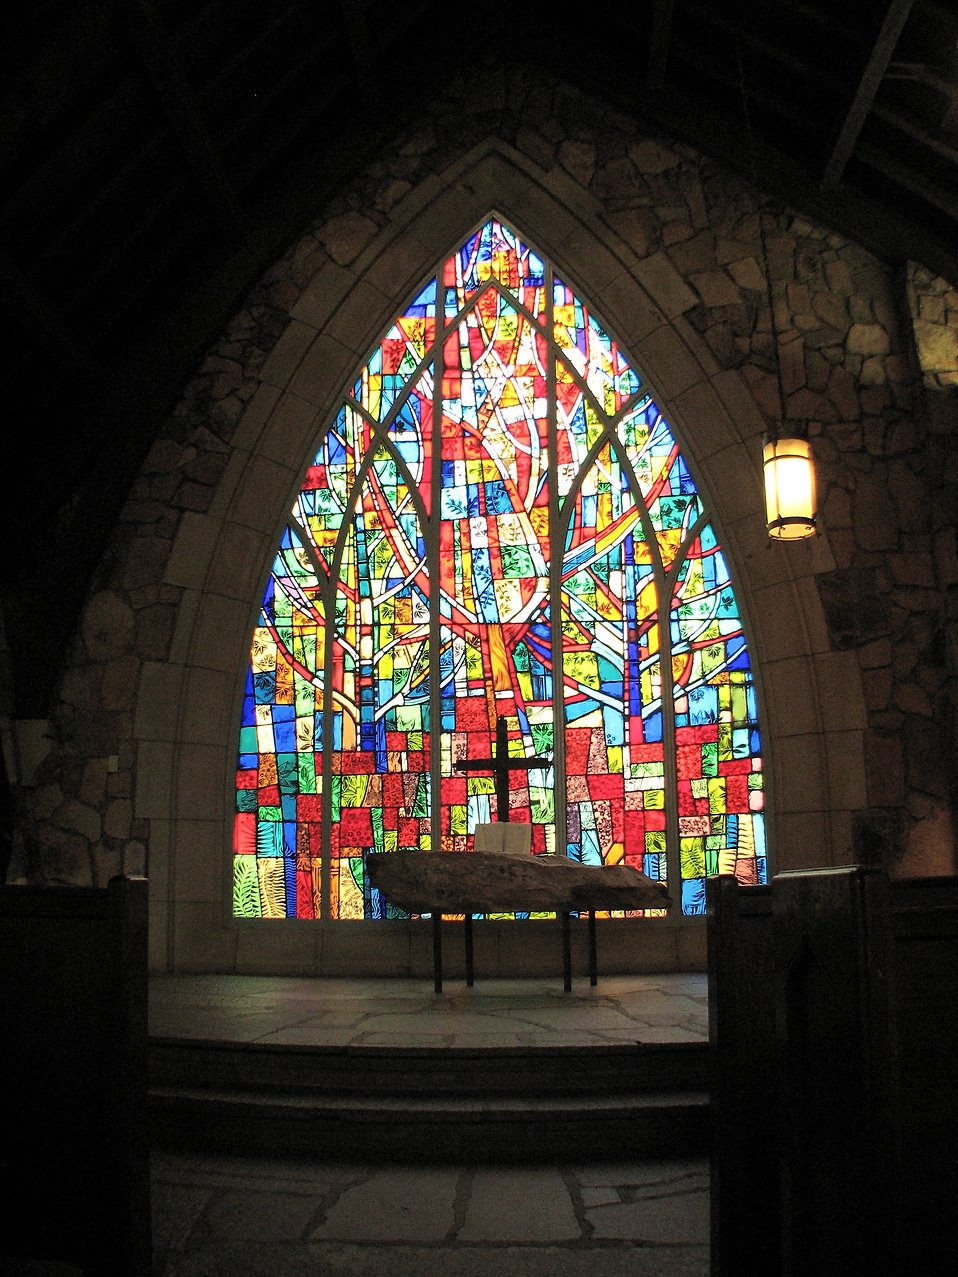 A small cross in front of a stained glass window.